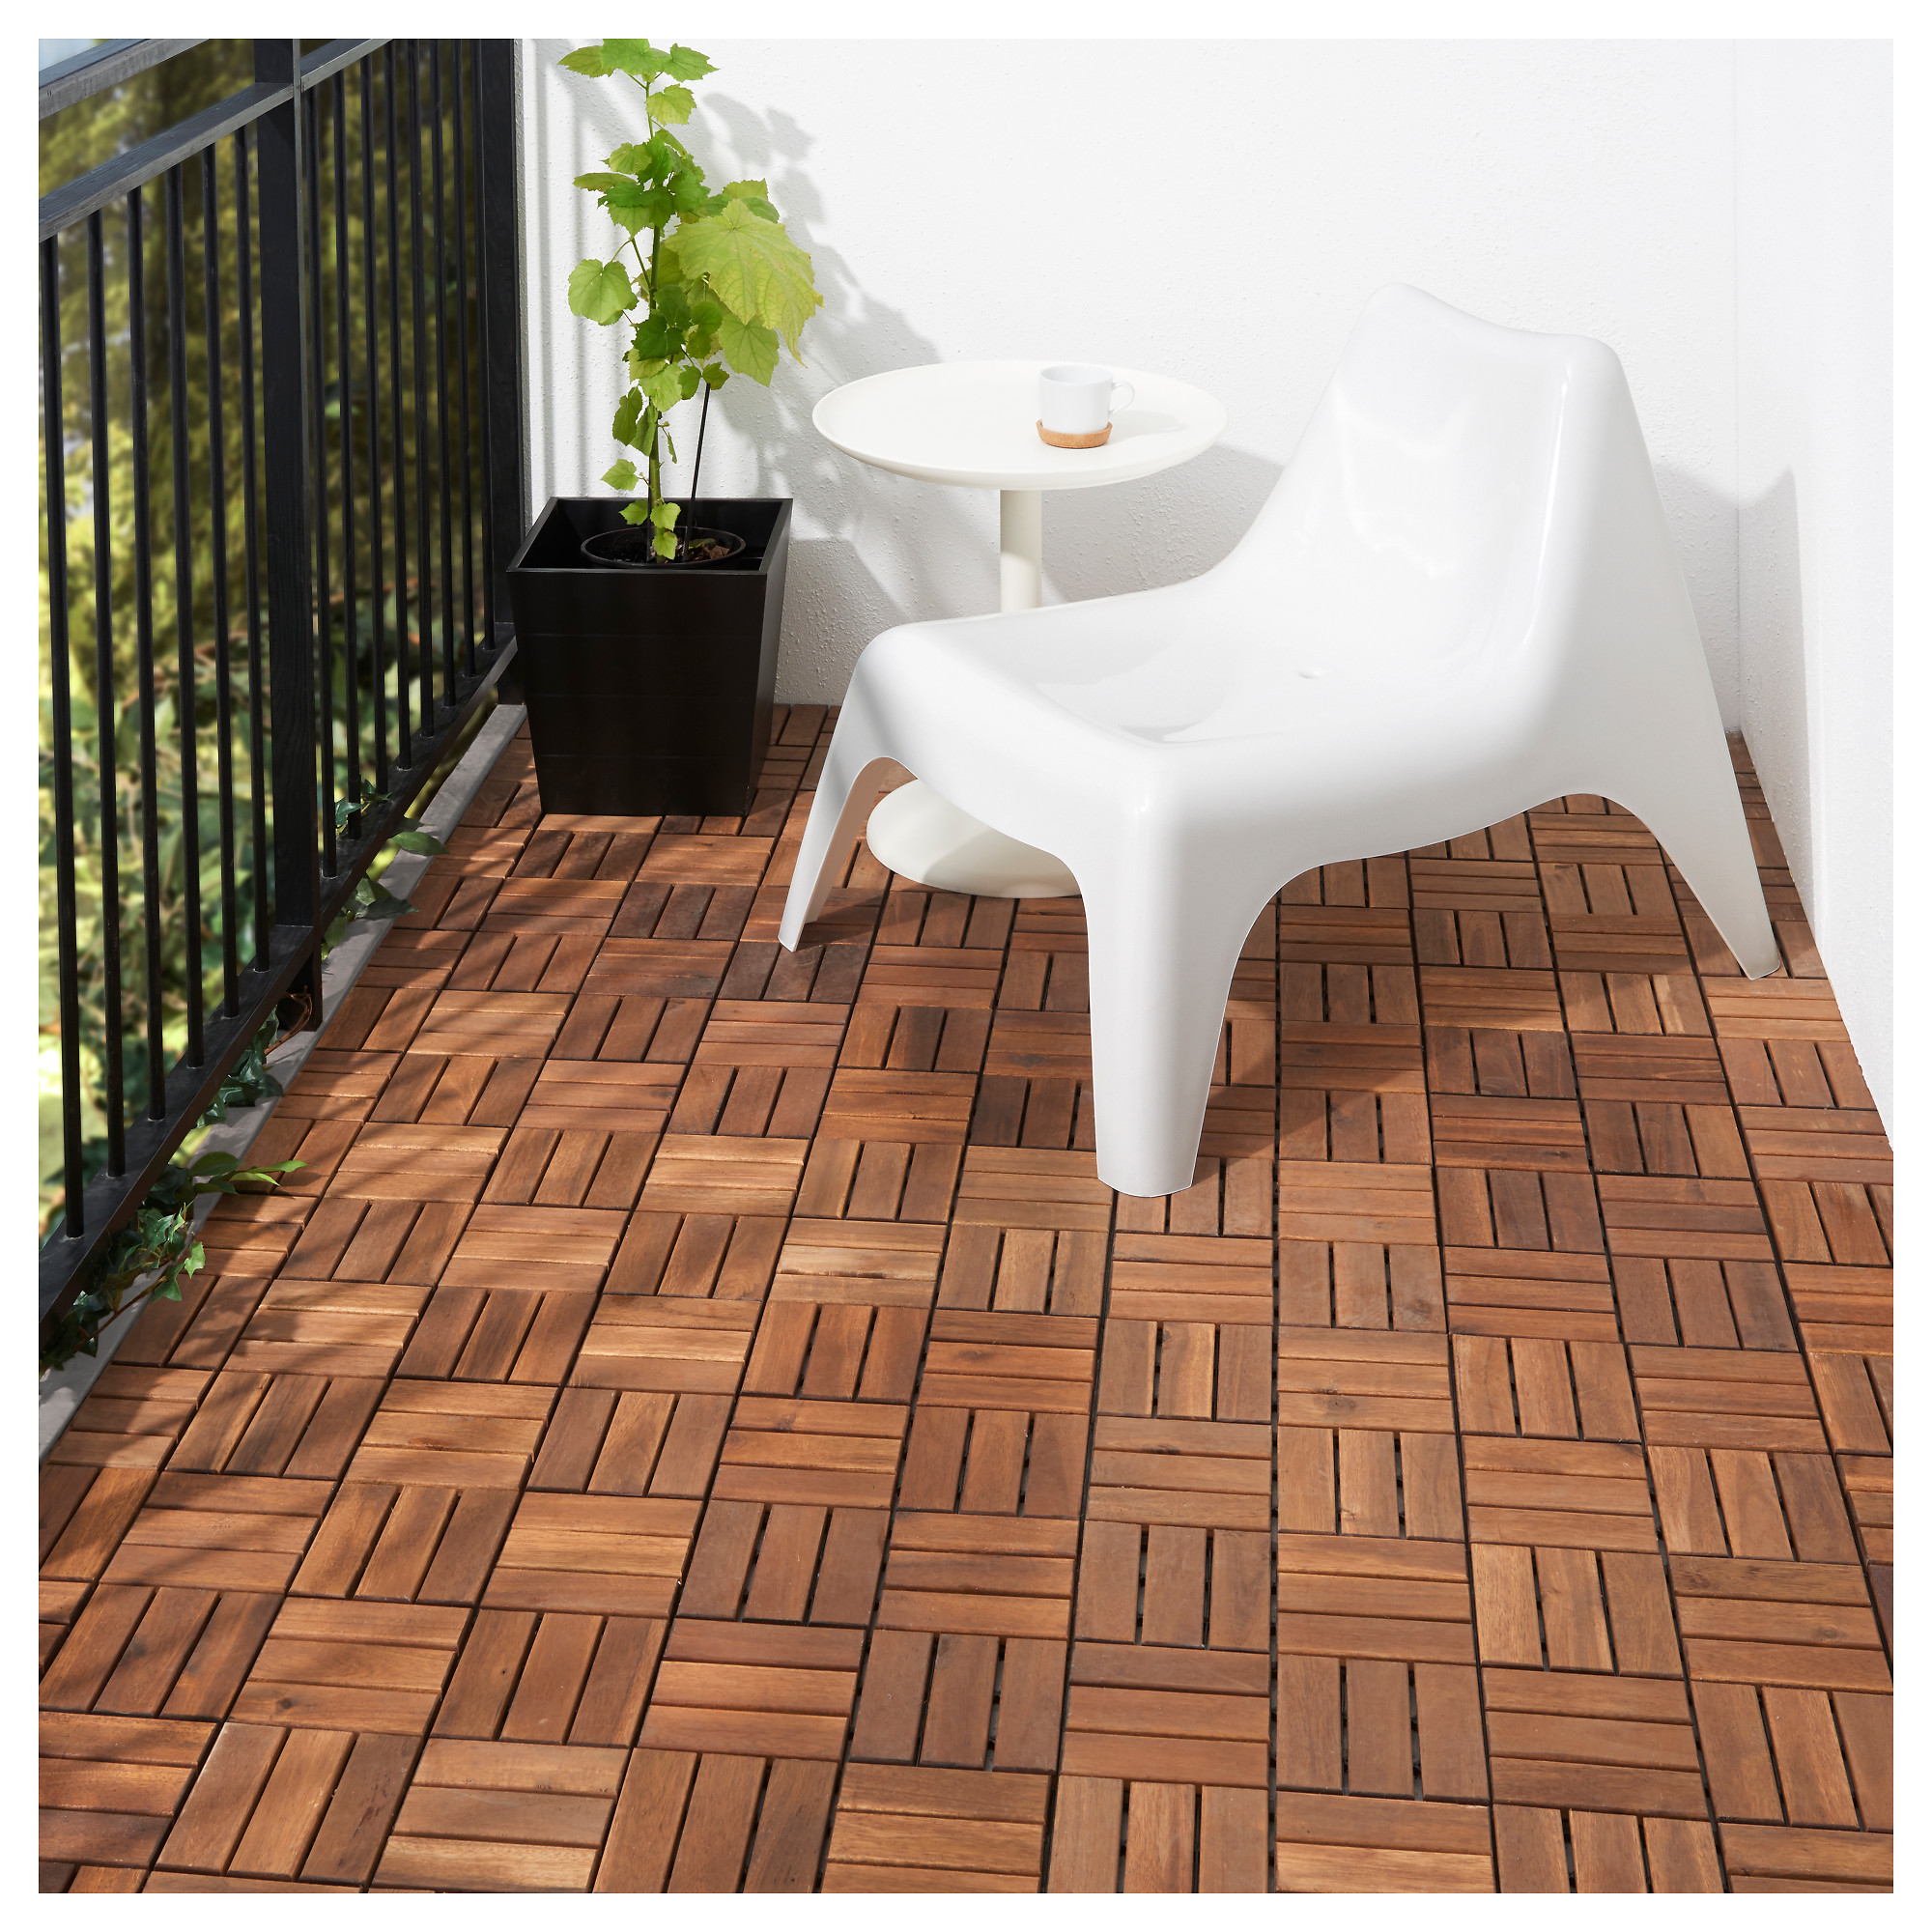 Decking outdoor flooring ikea runnen floor decking outdoor brown stained length 11 34 width baanklon Image collections